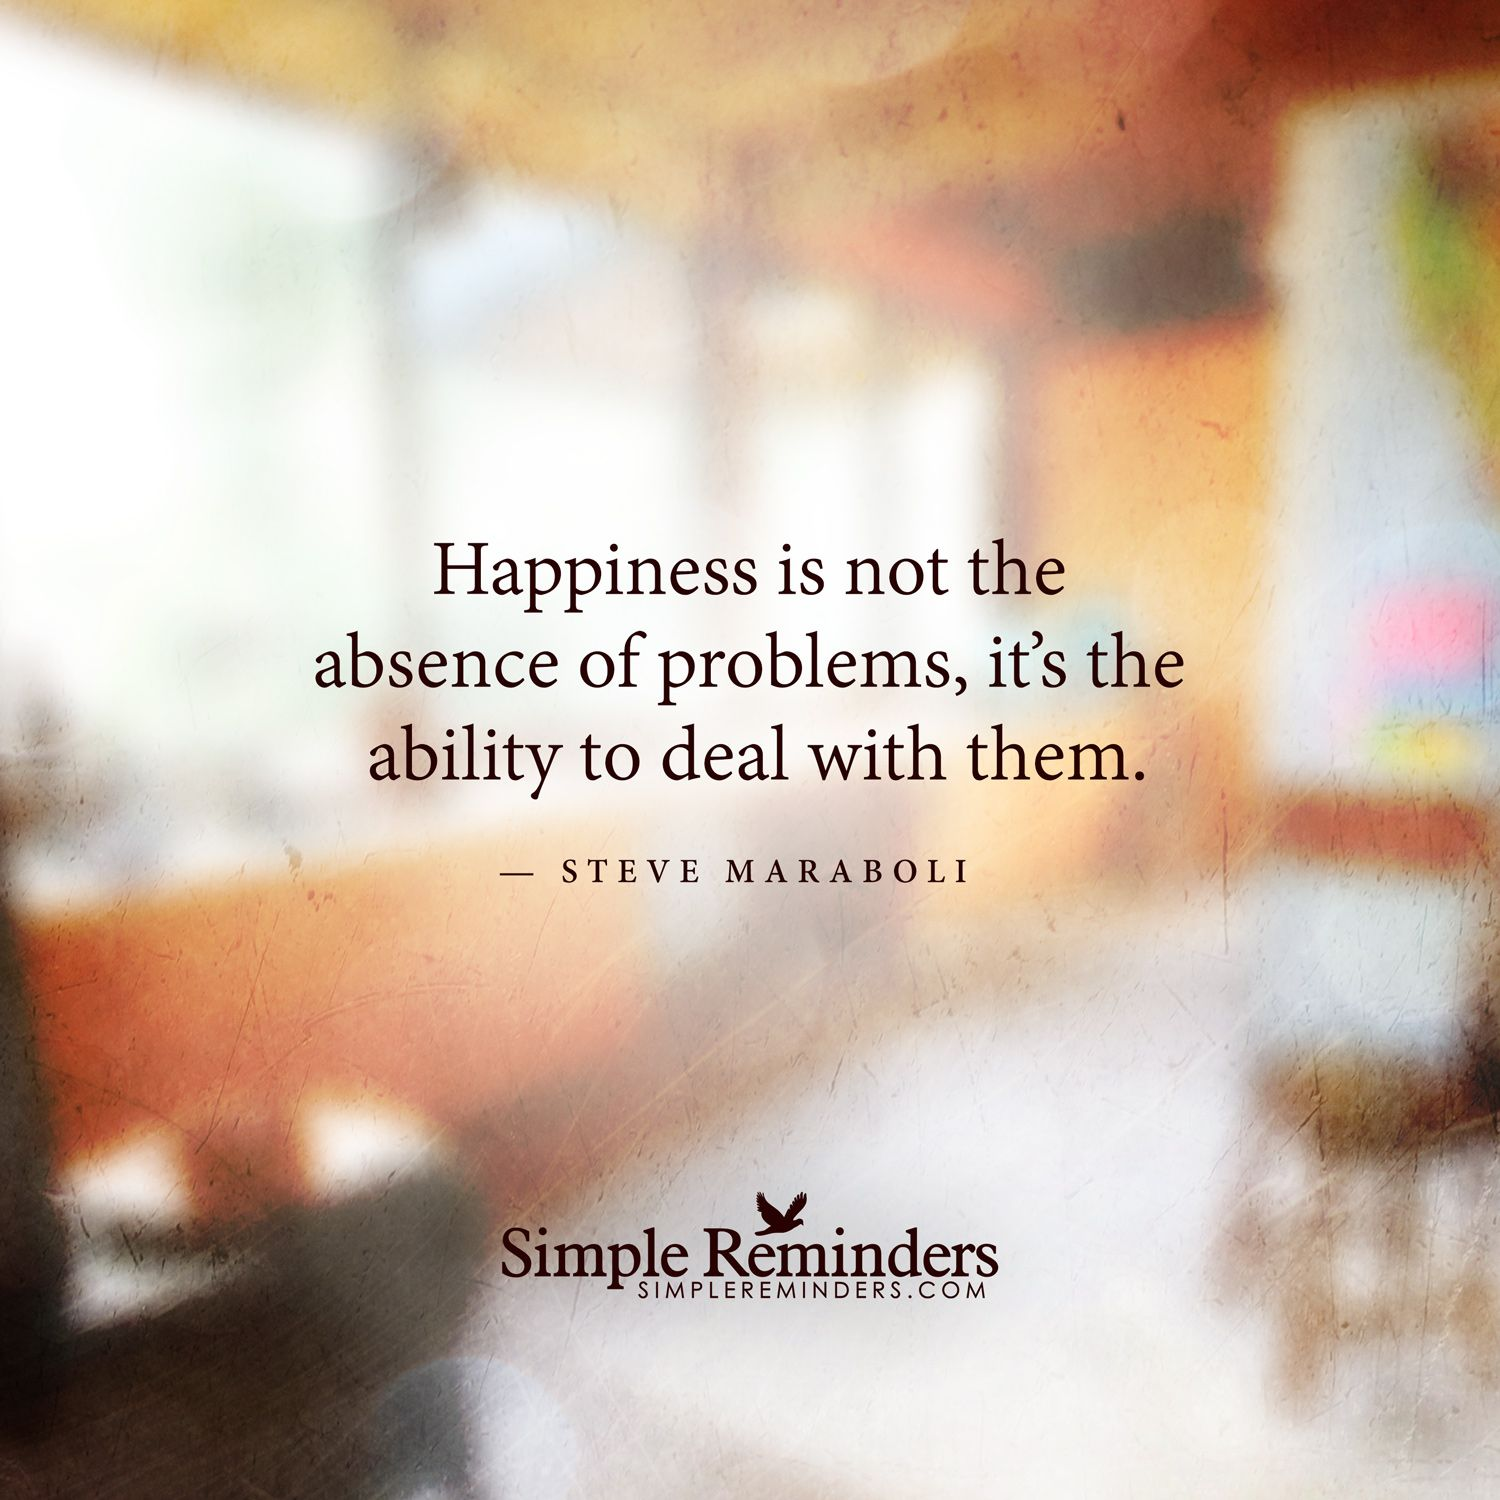 Quotes About Happiness Happiness Is Not The Absence Of Problems It's The Ability To Deal